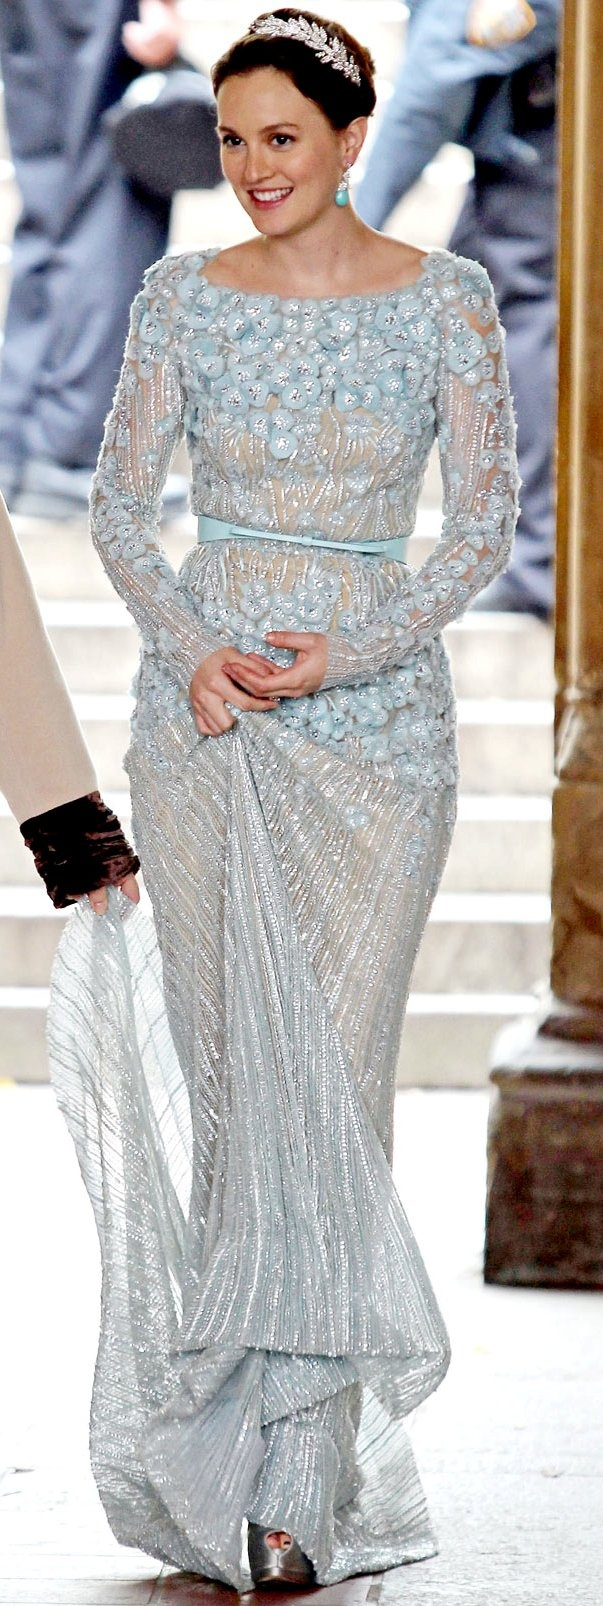 Blair waldorf 39 something blue 39 wedding gown by elie saab for Wedding dress blair waldorf